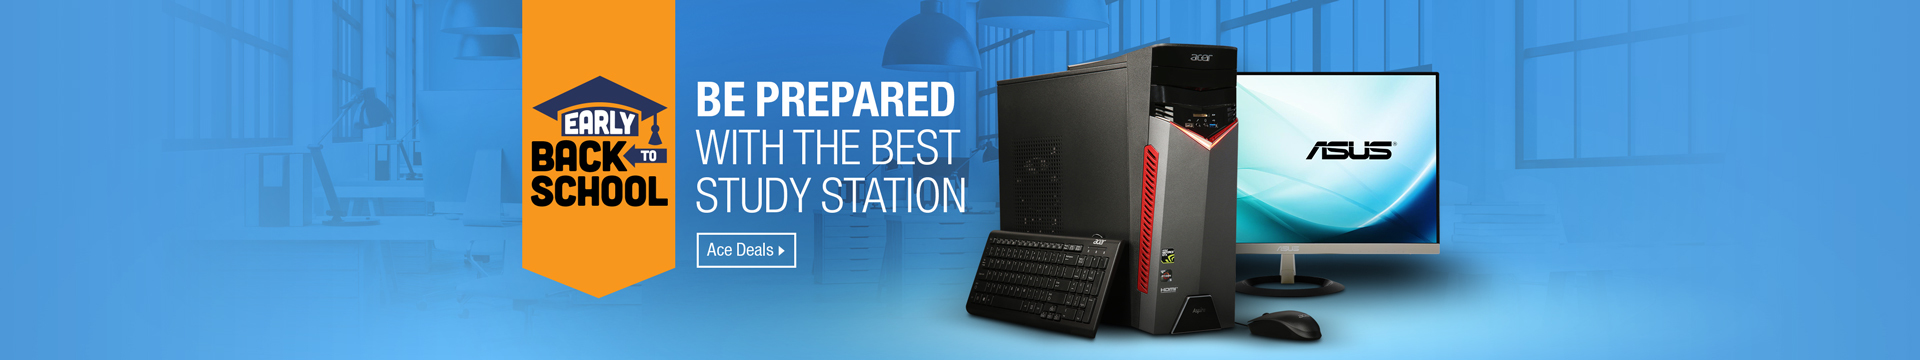 Be Prepared With The Best Study Station